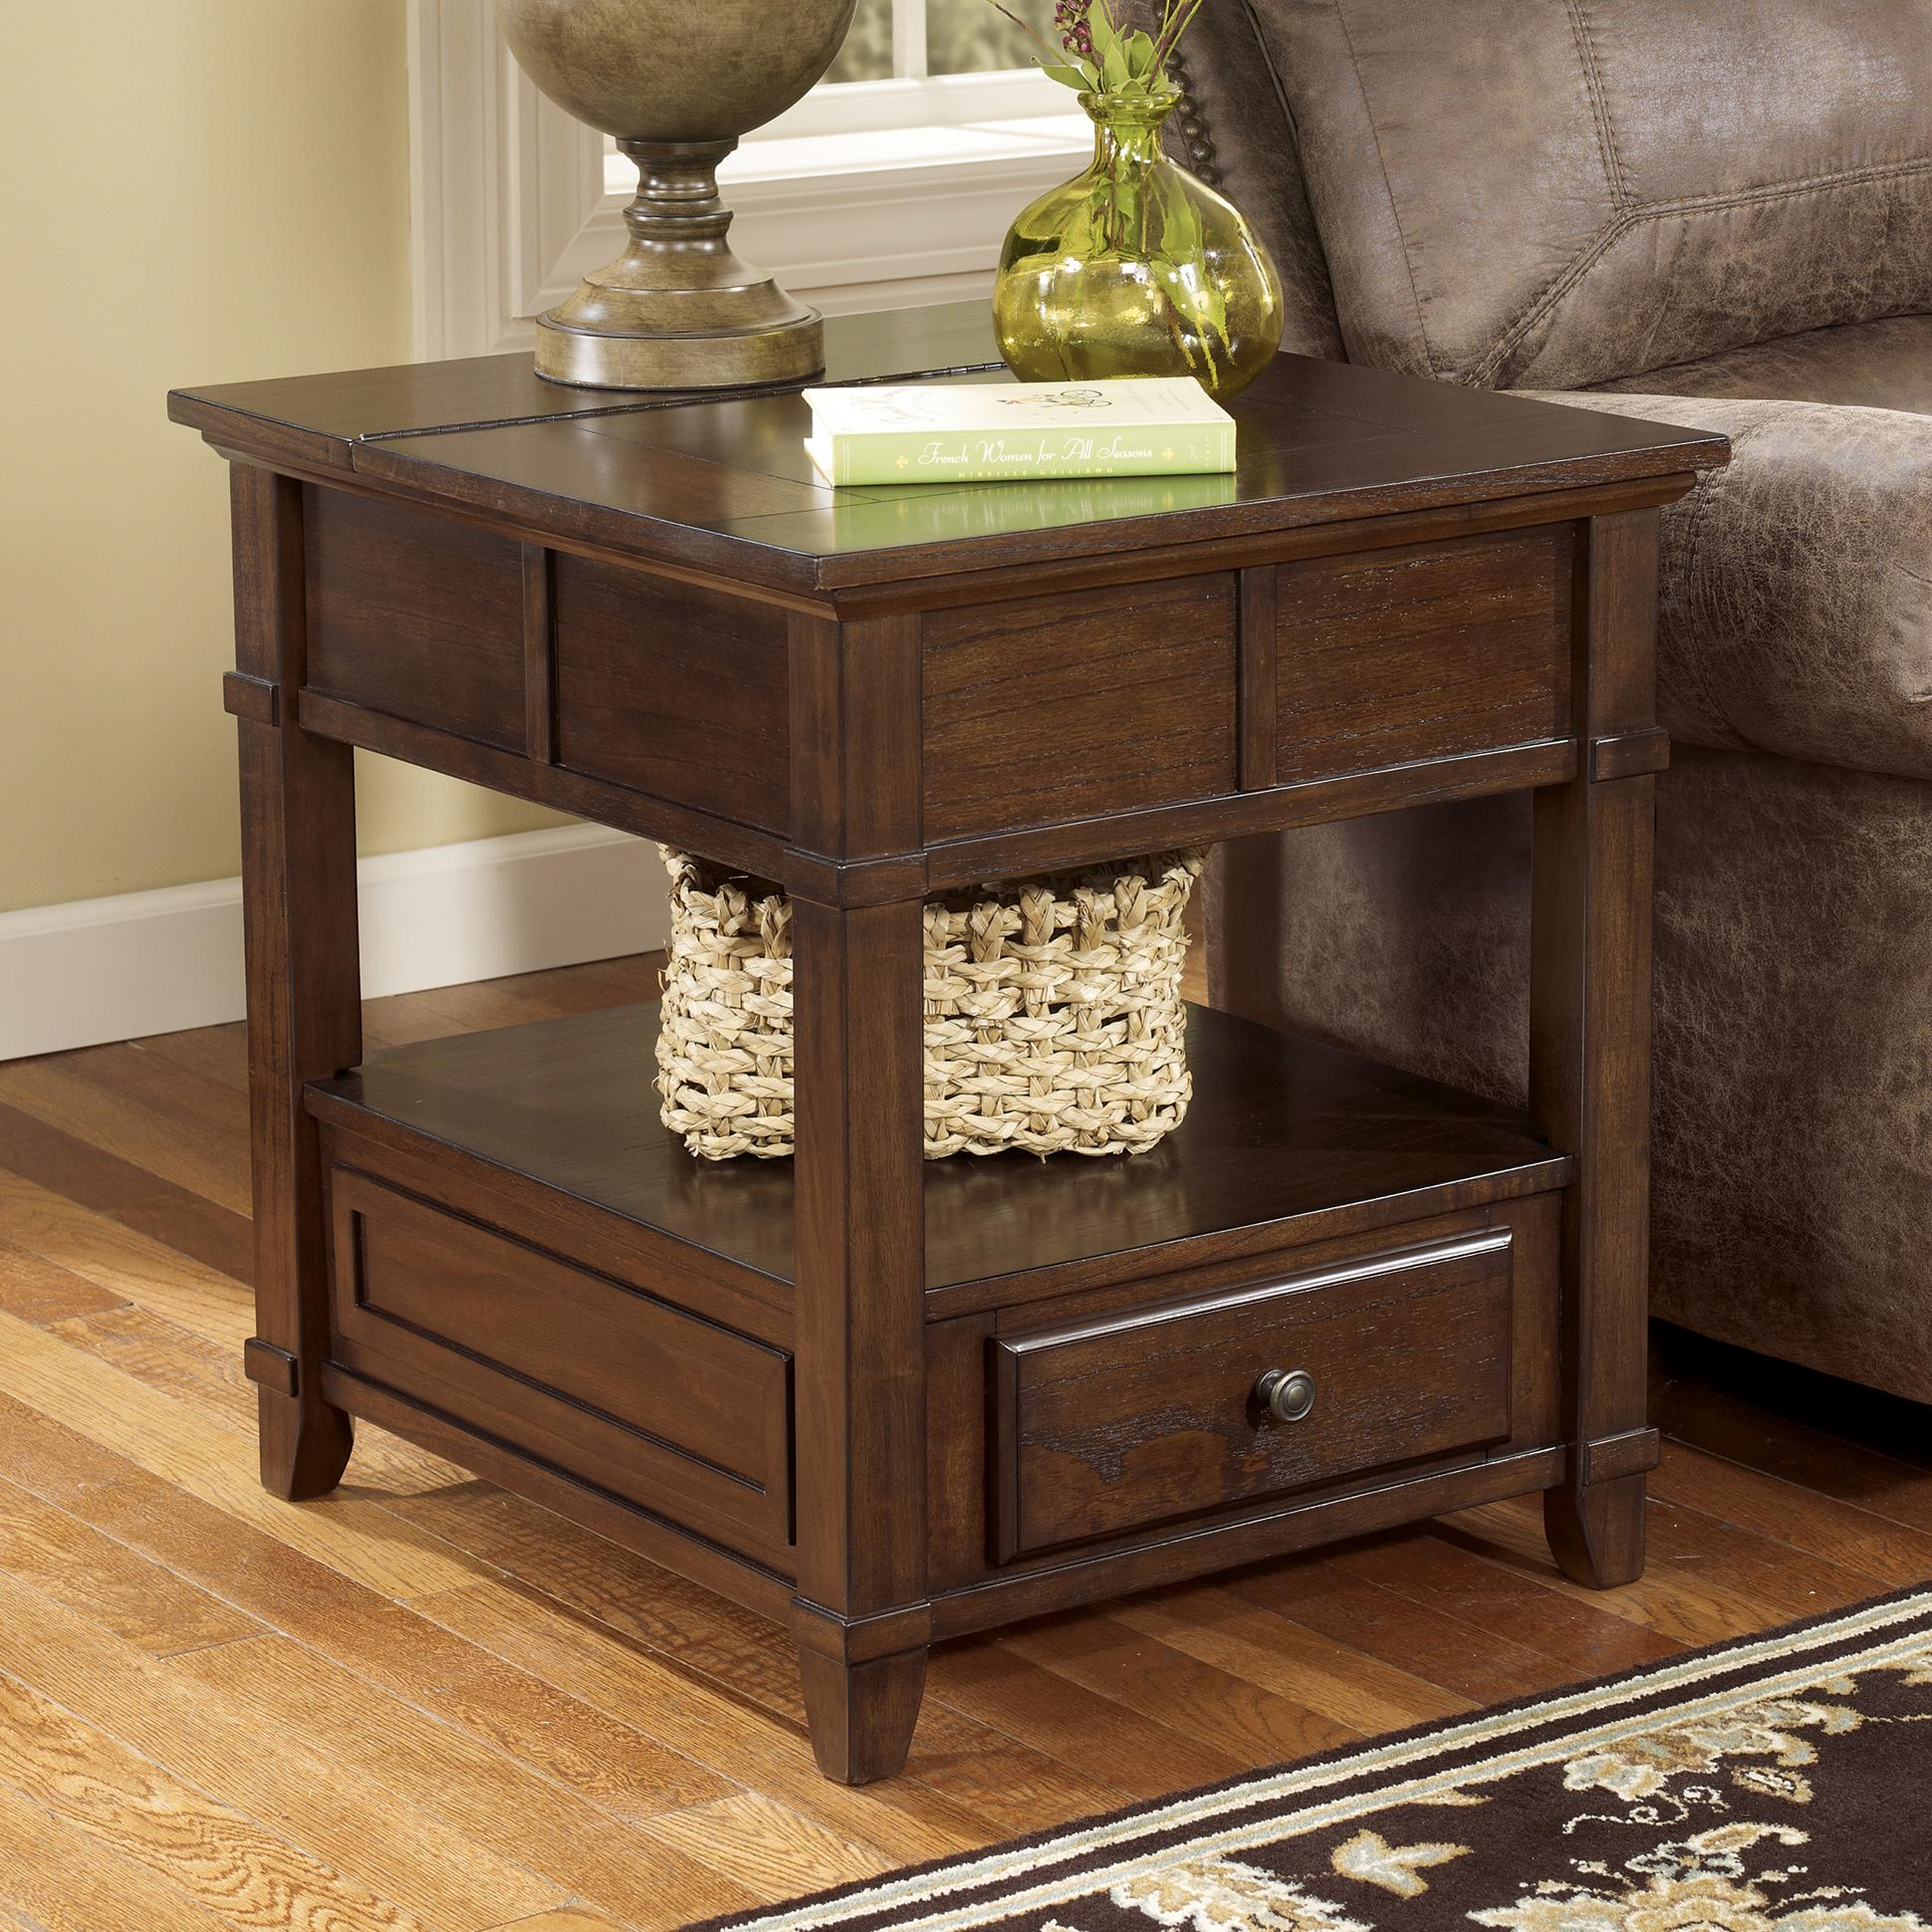 signature design ashley gately end table with hidden storage products color tables furniture rising coffee bedroom nightstand decor shed windows kitchen inch square small triangle